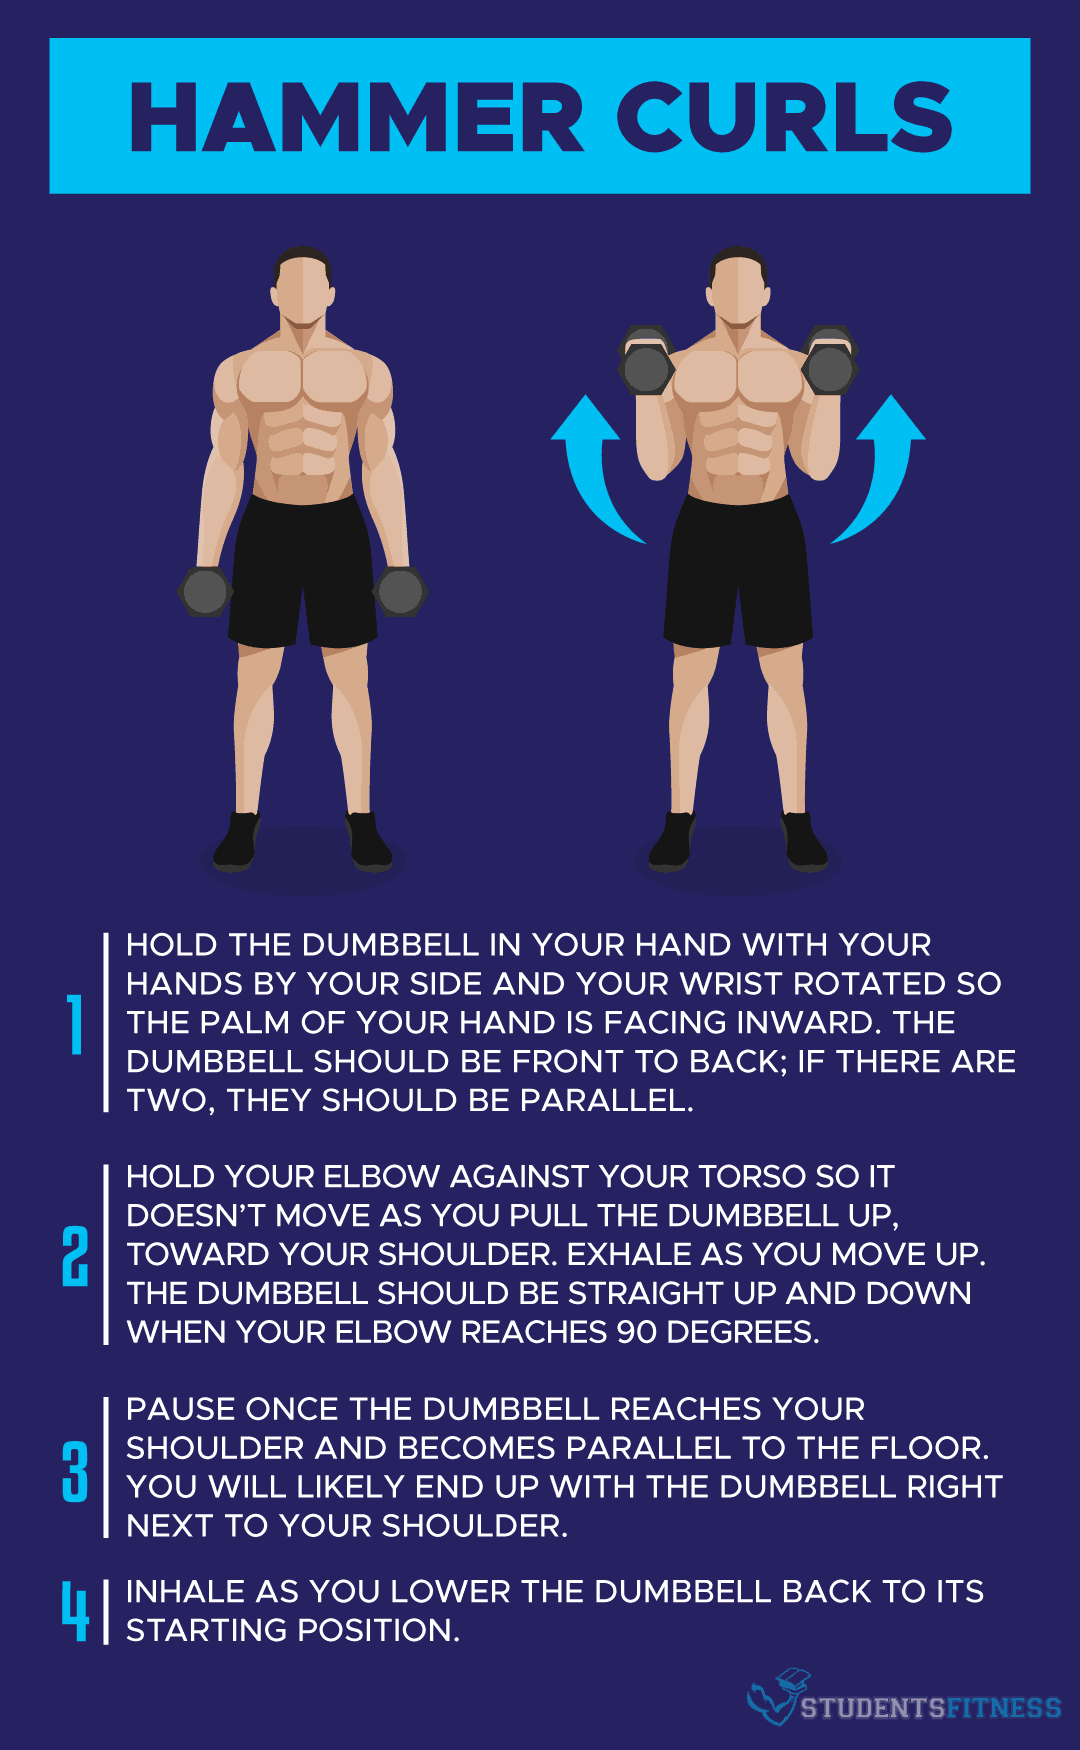 How to Do the Hammer Curl Exercise - Students Fitness